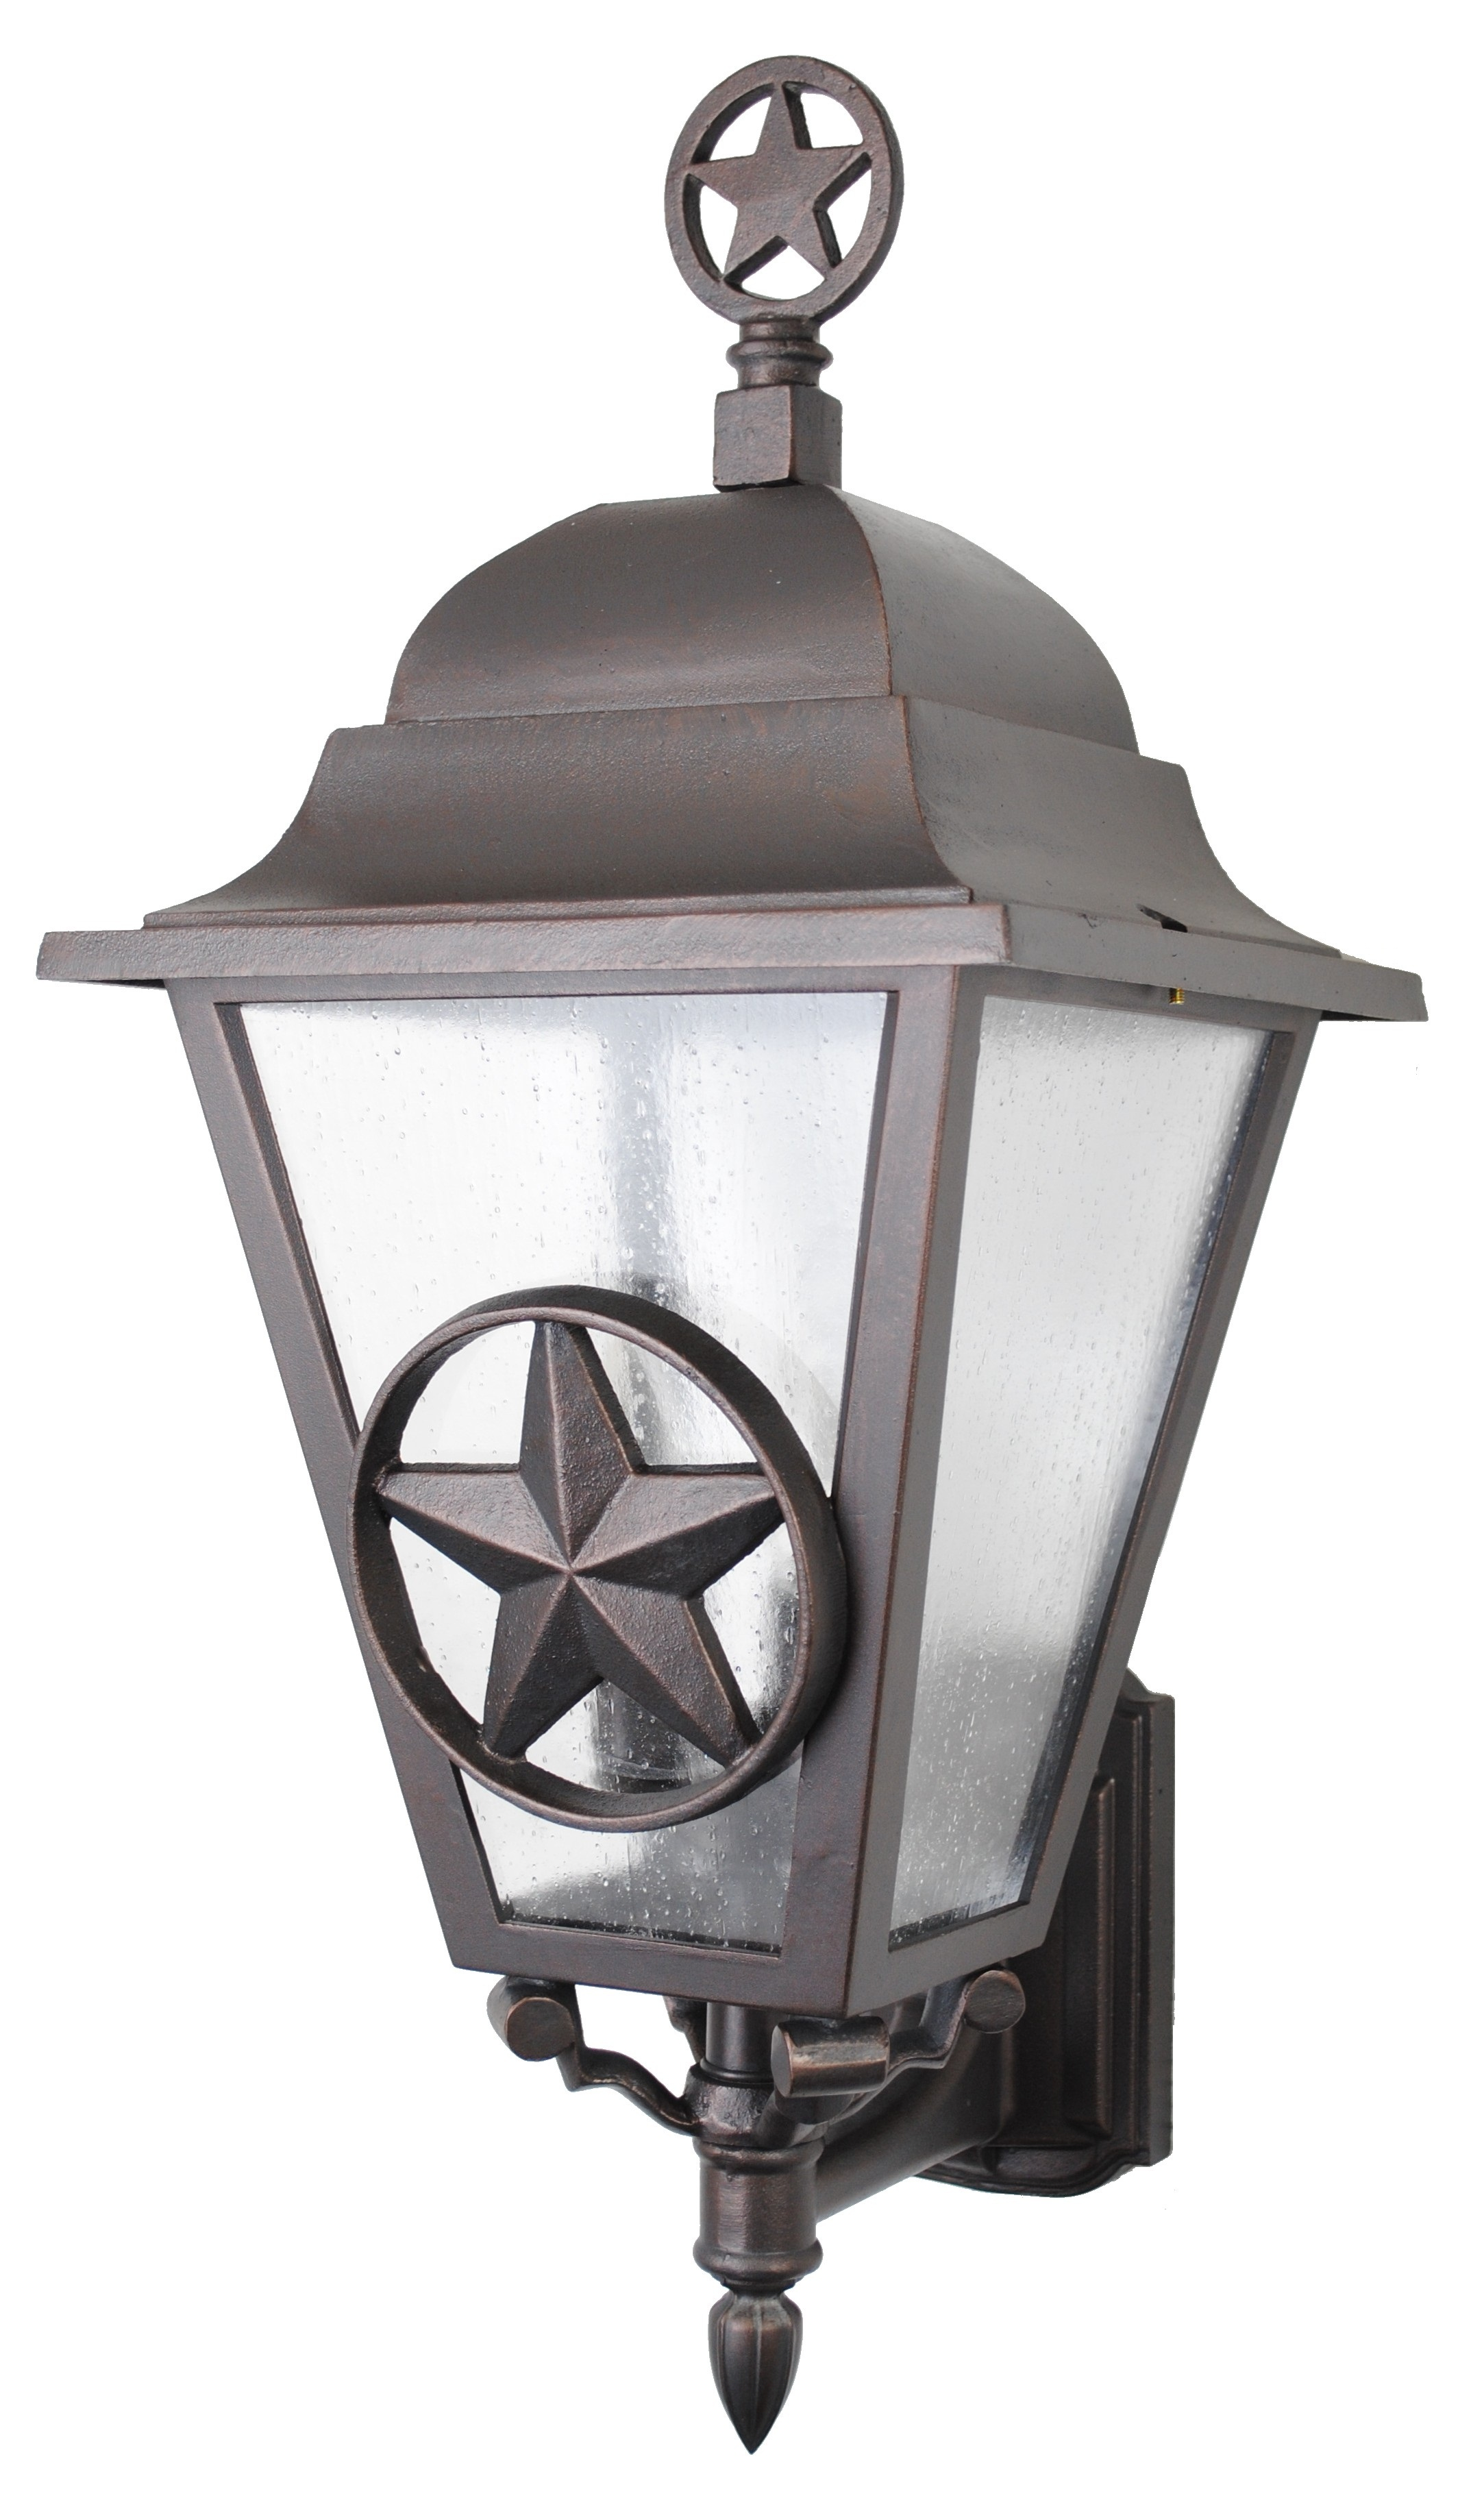 Custom Made Lone Star Wall Mounted Light With Finial